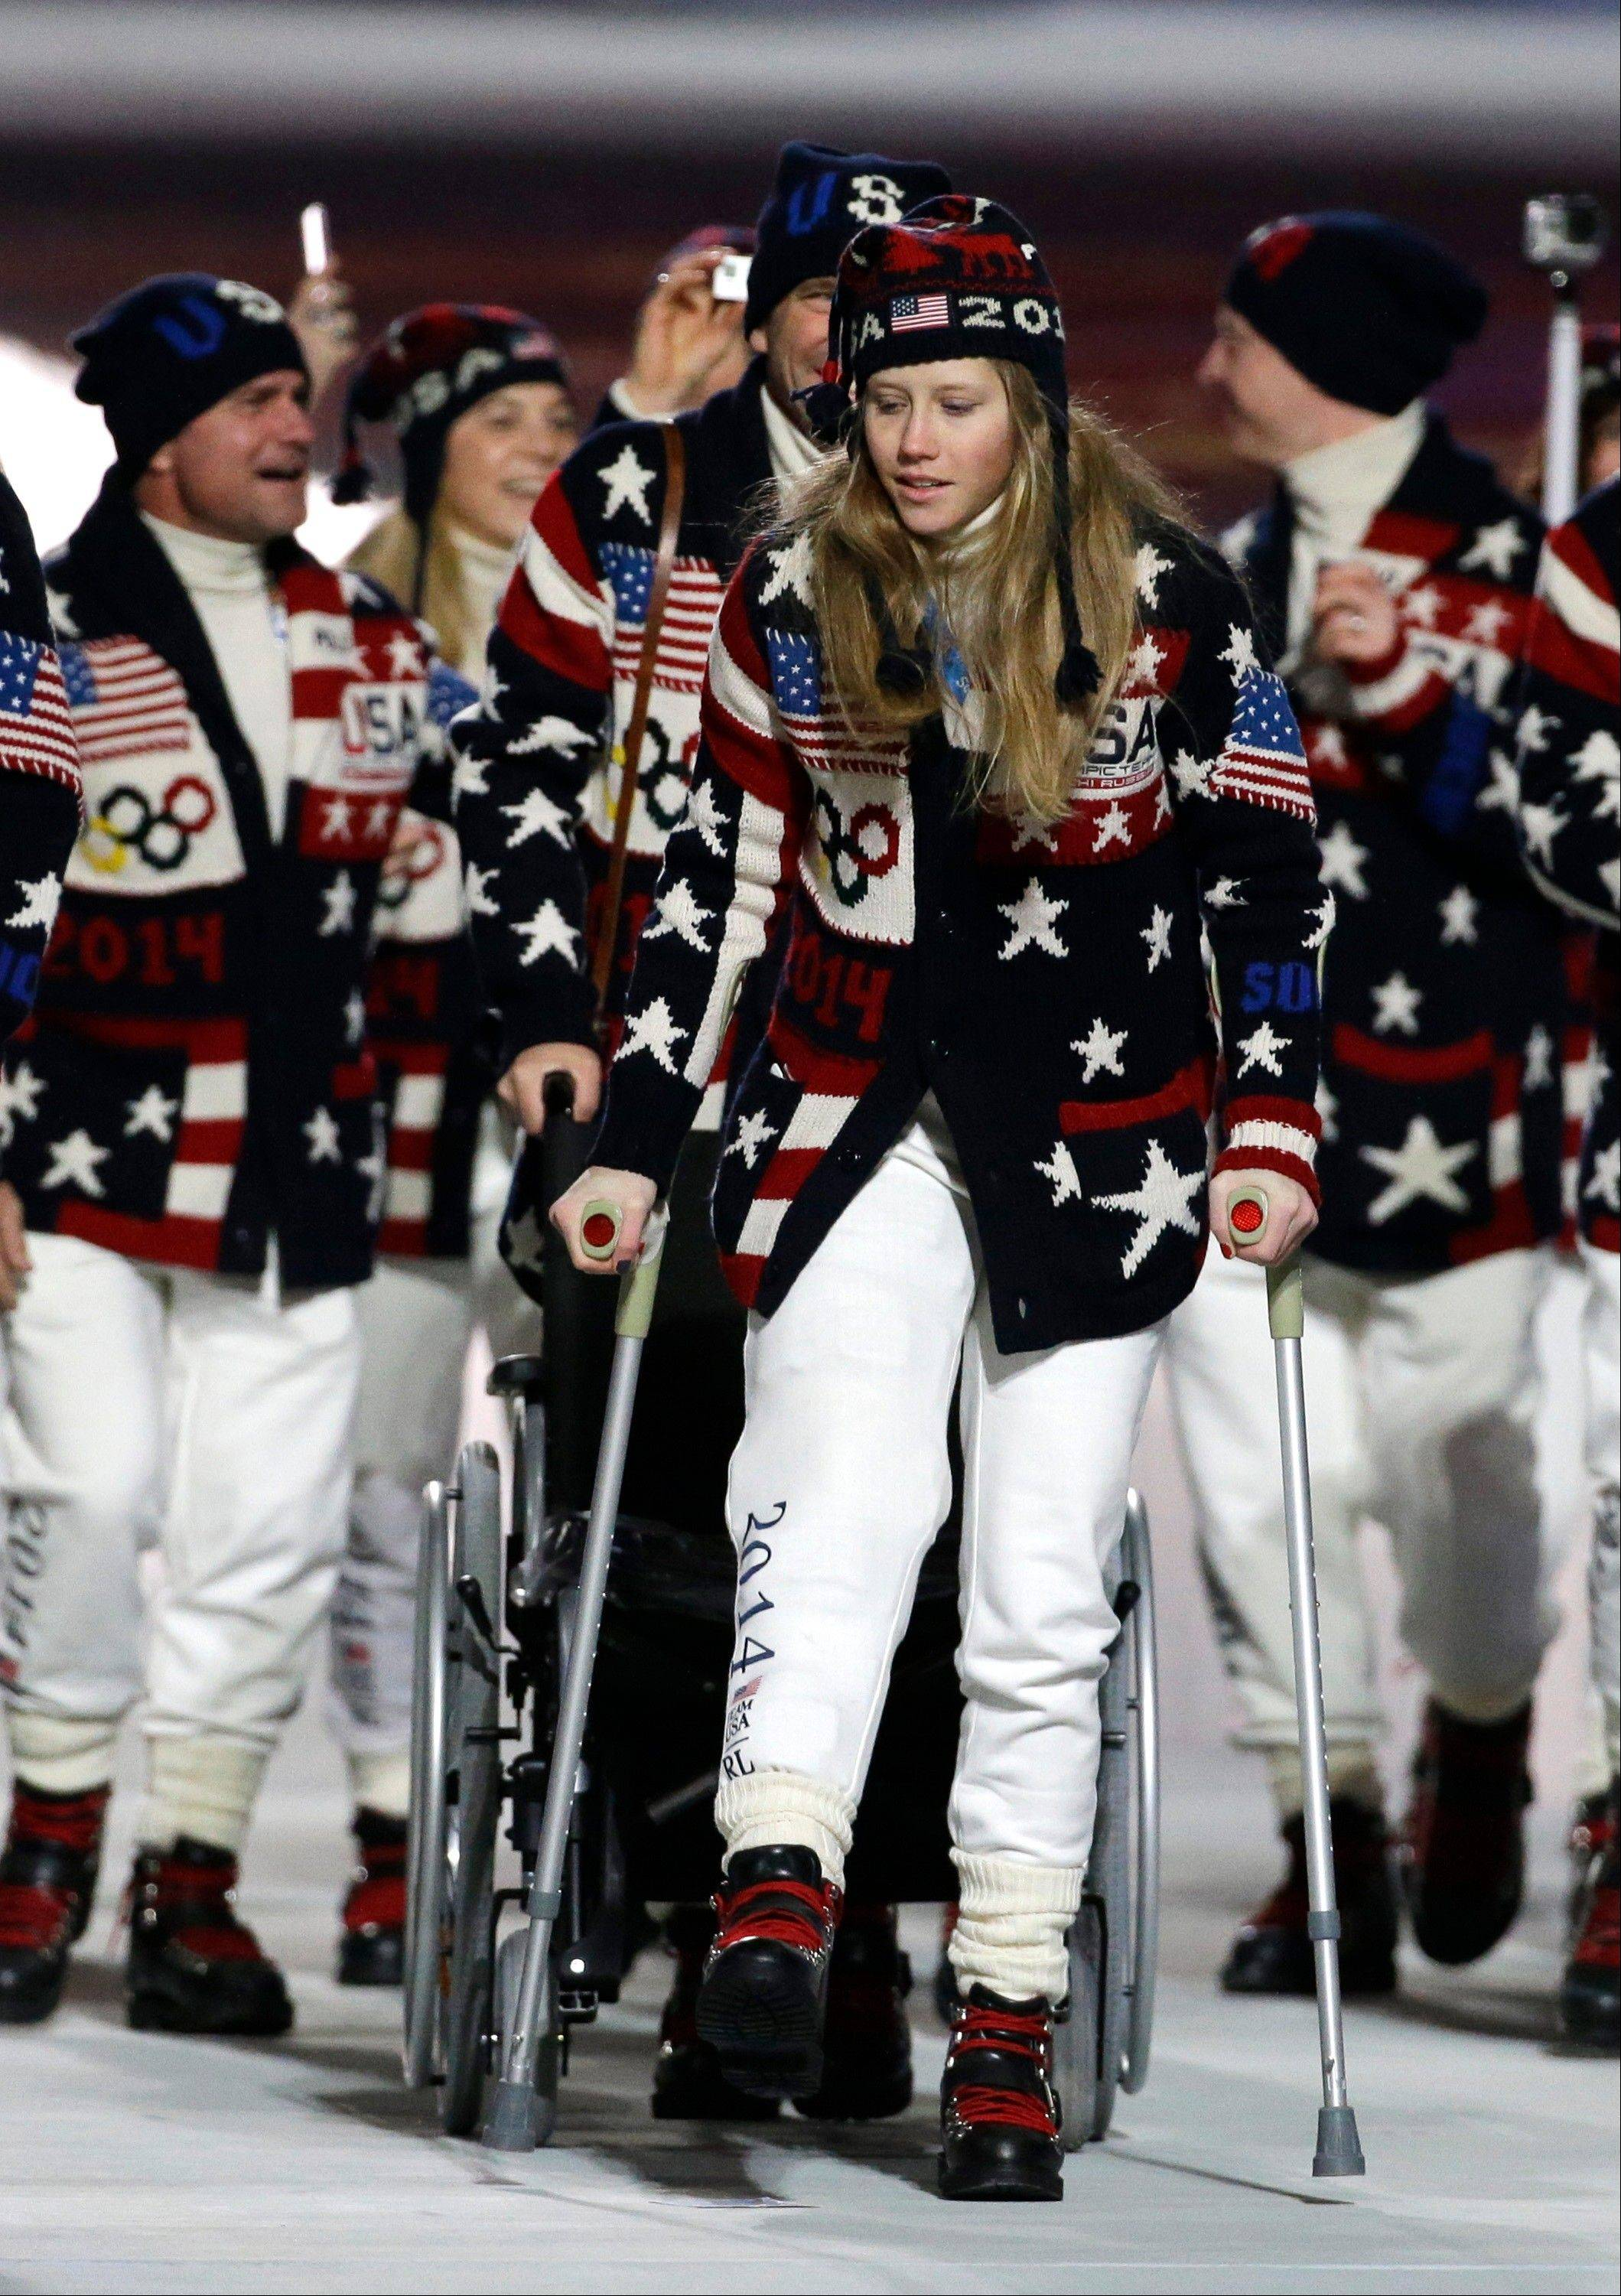 Freeskier Heidi Kloser of the United States walks on crutches after she injured her right leg during a training run before moguls qualifying as she arrives for the opening ceremony.